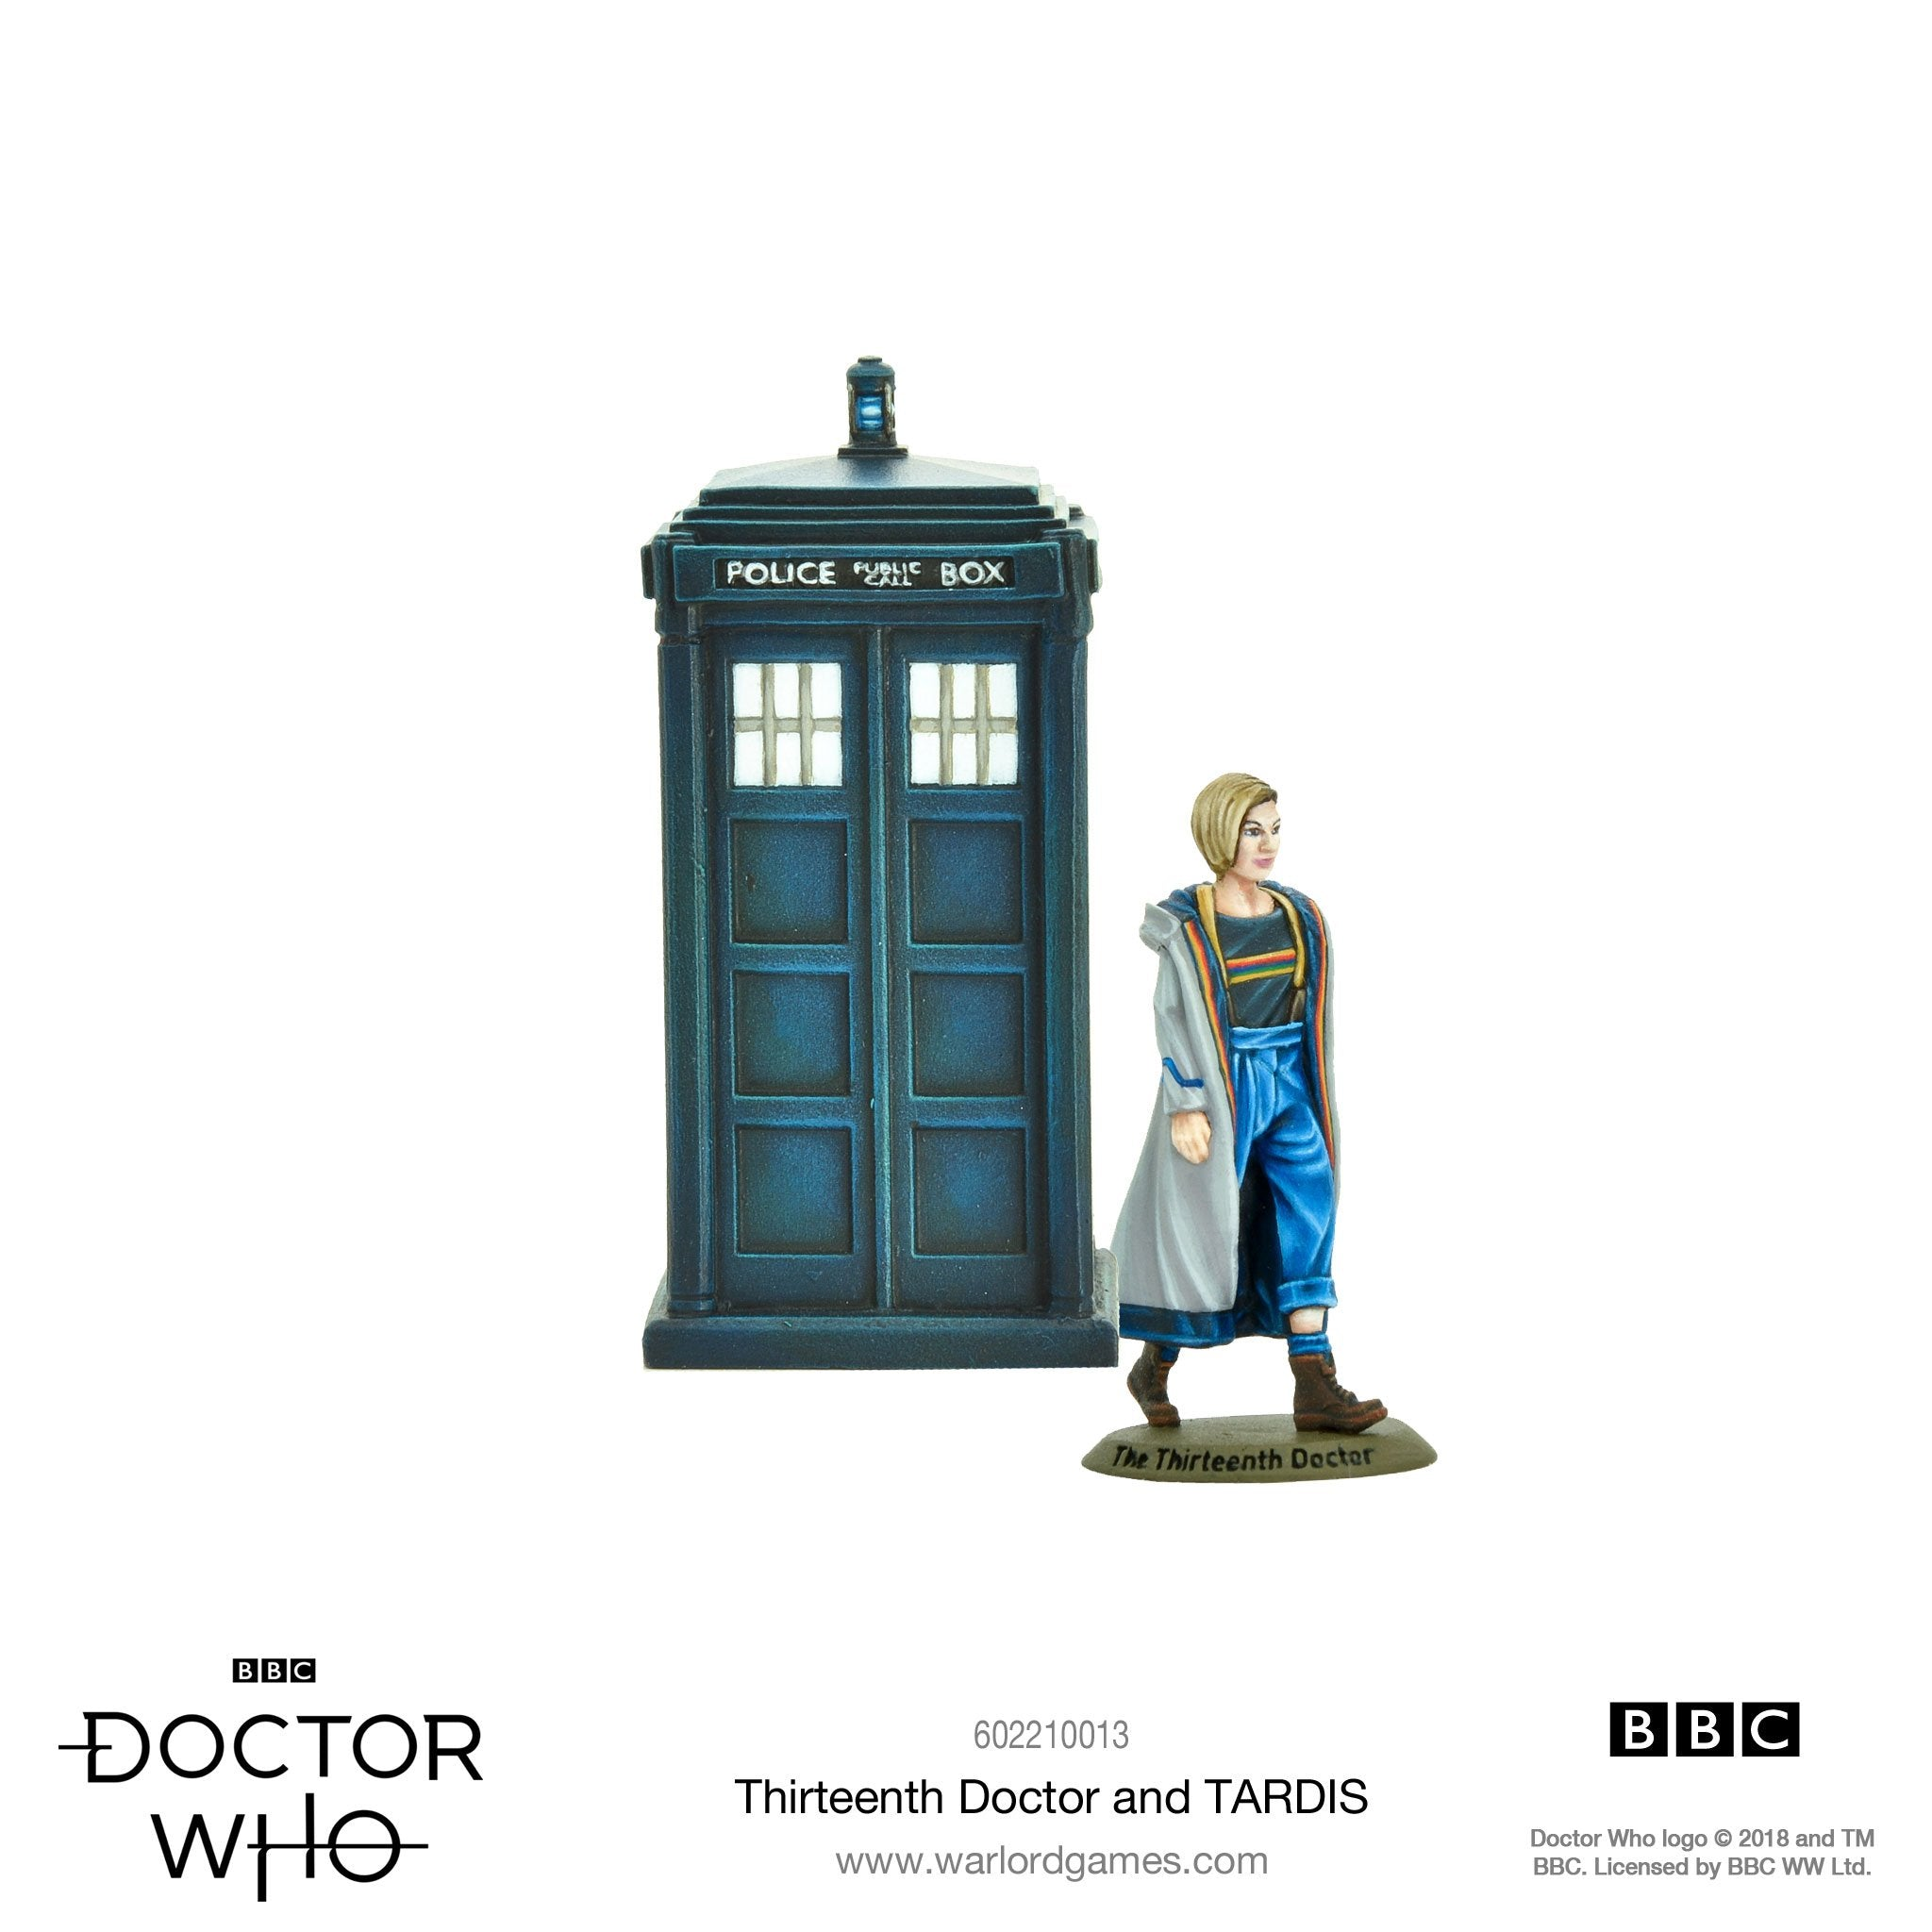 The Thirteenth Doctor & TARDIS